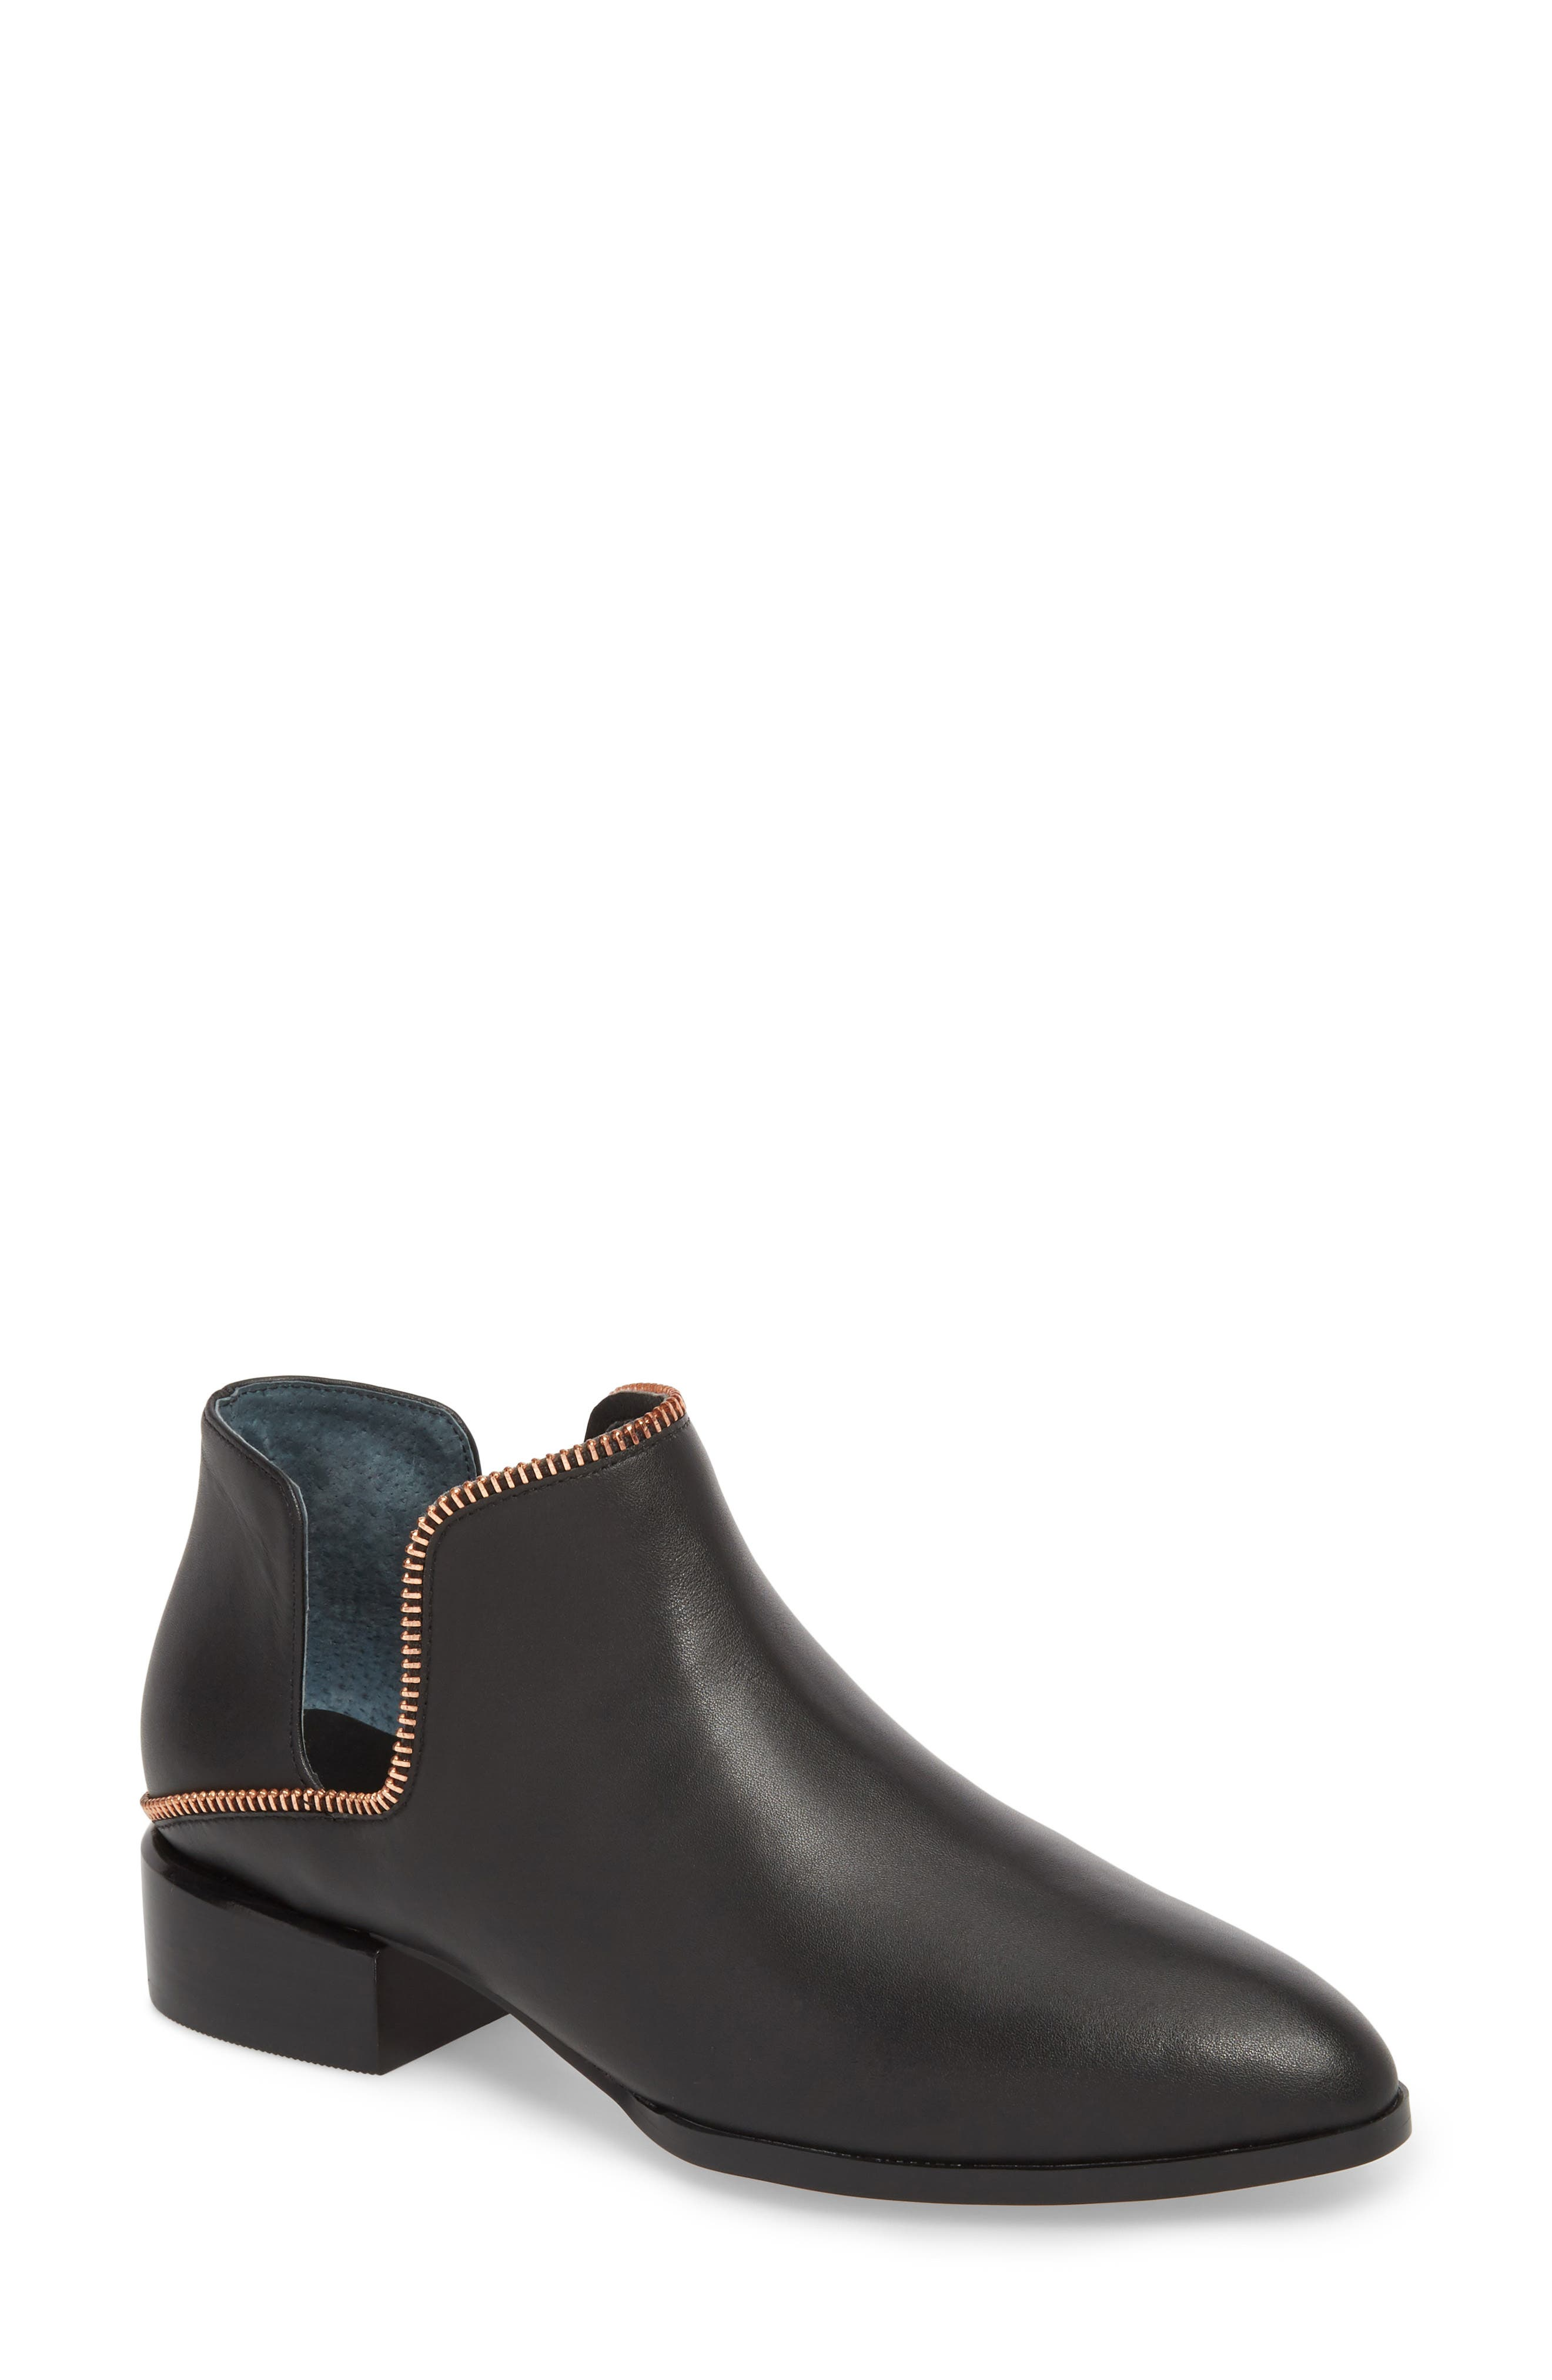 Piper Bootie,                         Main,                         color, Black Leather/ Rosegold